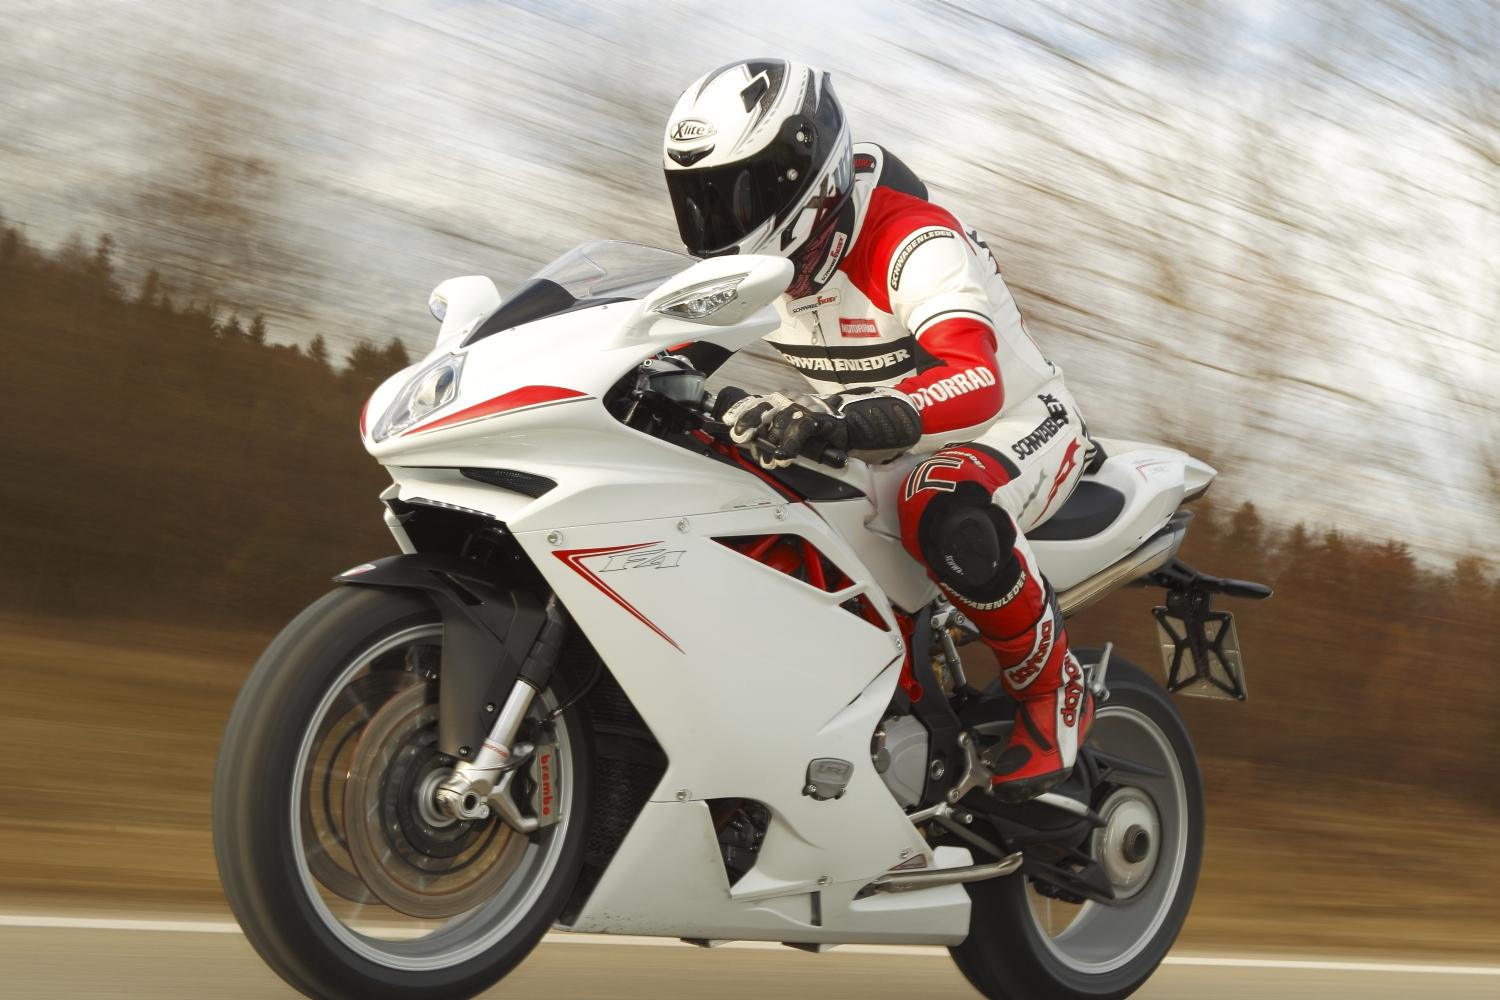 http://www.motorrad-bilder.at/slideshows/291/009267/mv-agusta-f4-010.jpg